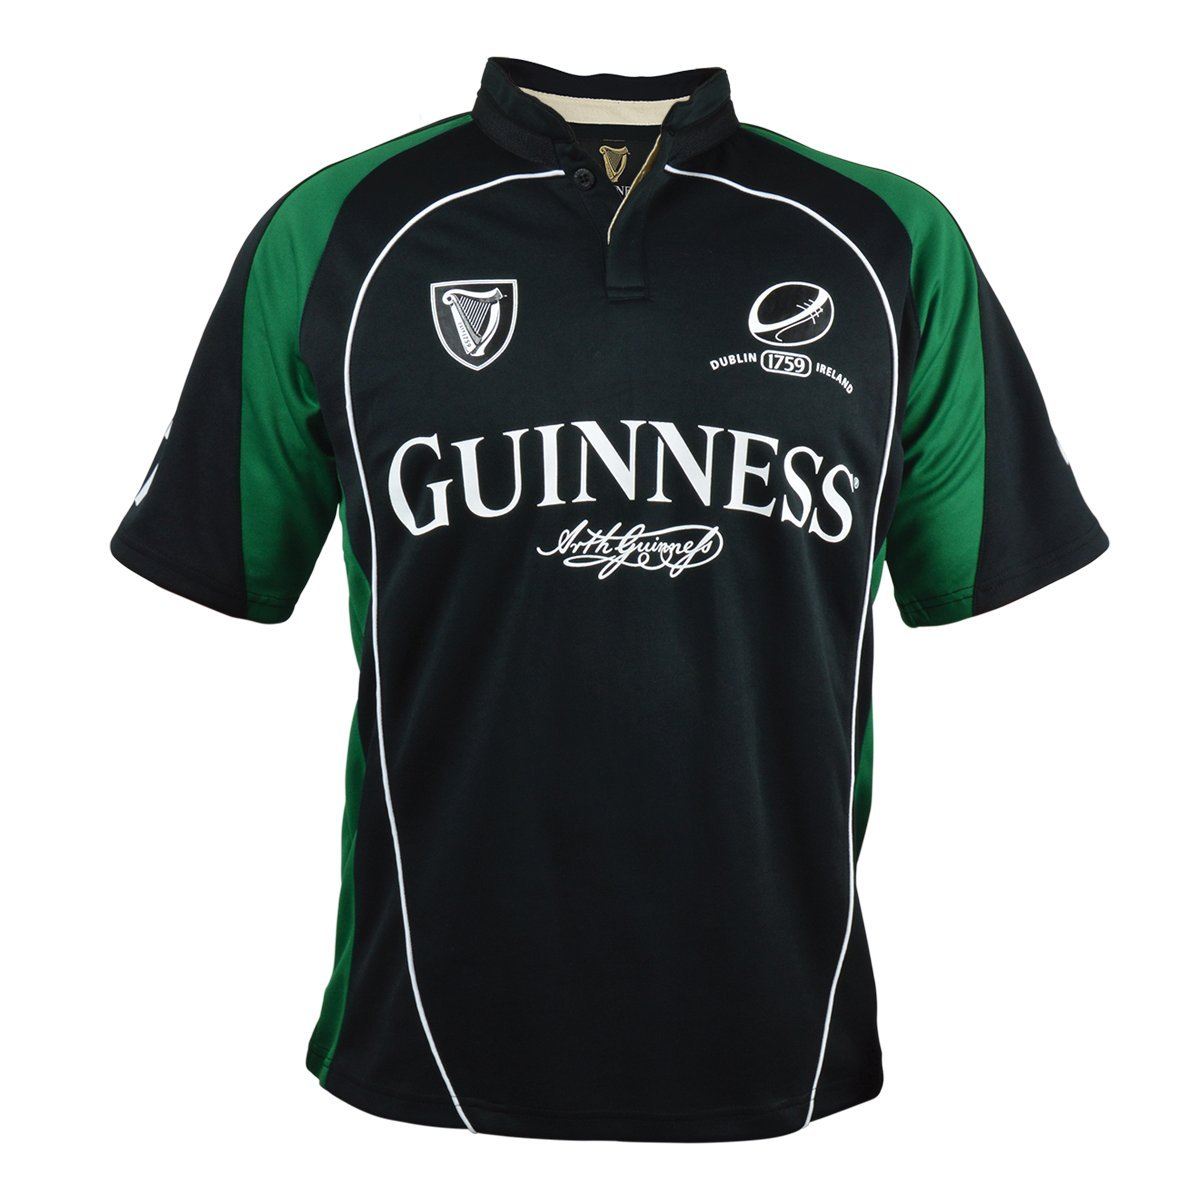 Guinness Official Merchandise SHIRT メンズ B07BY7RM35  Small